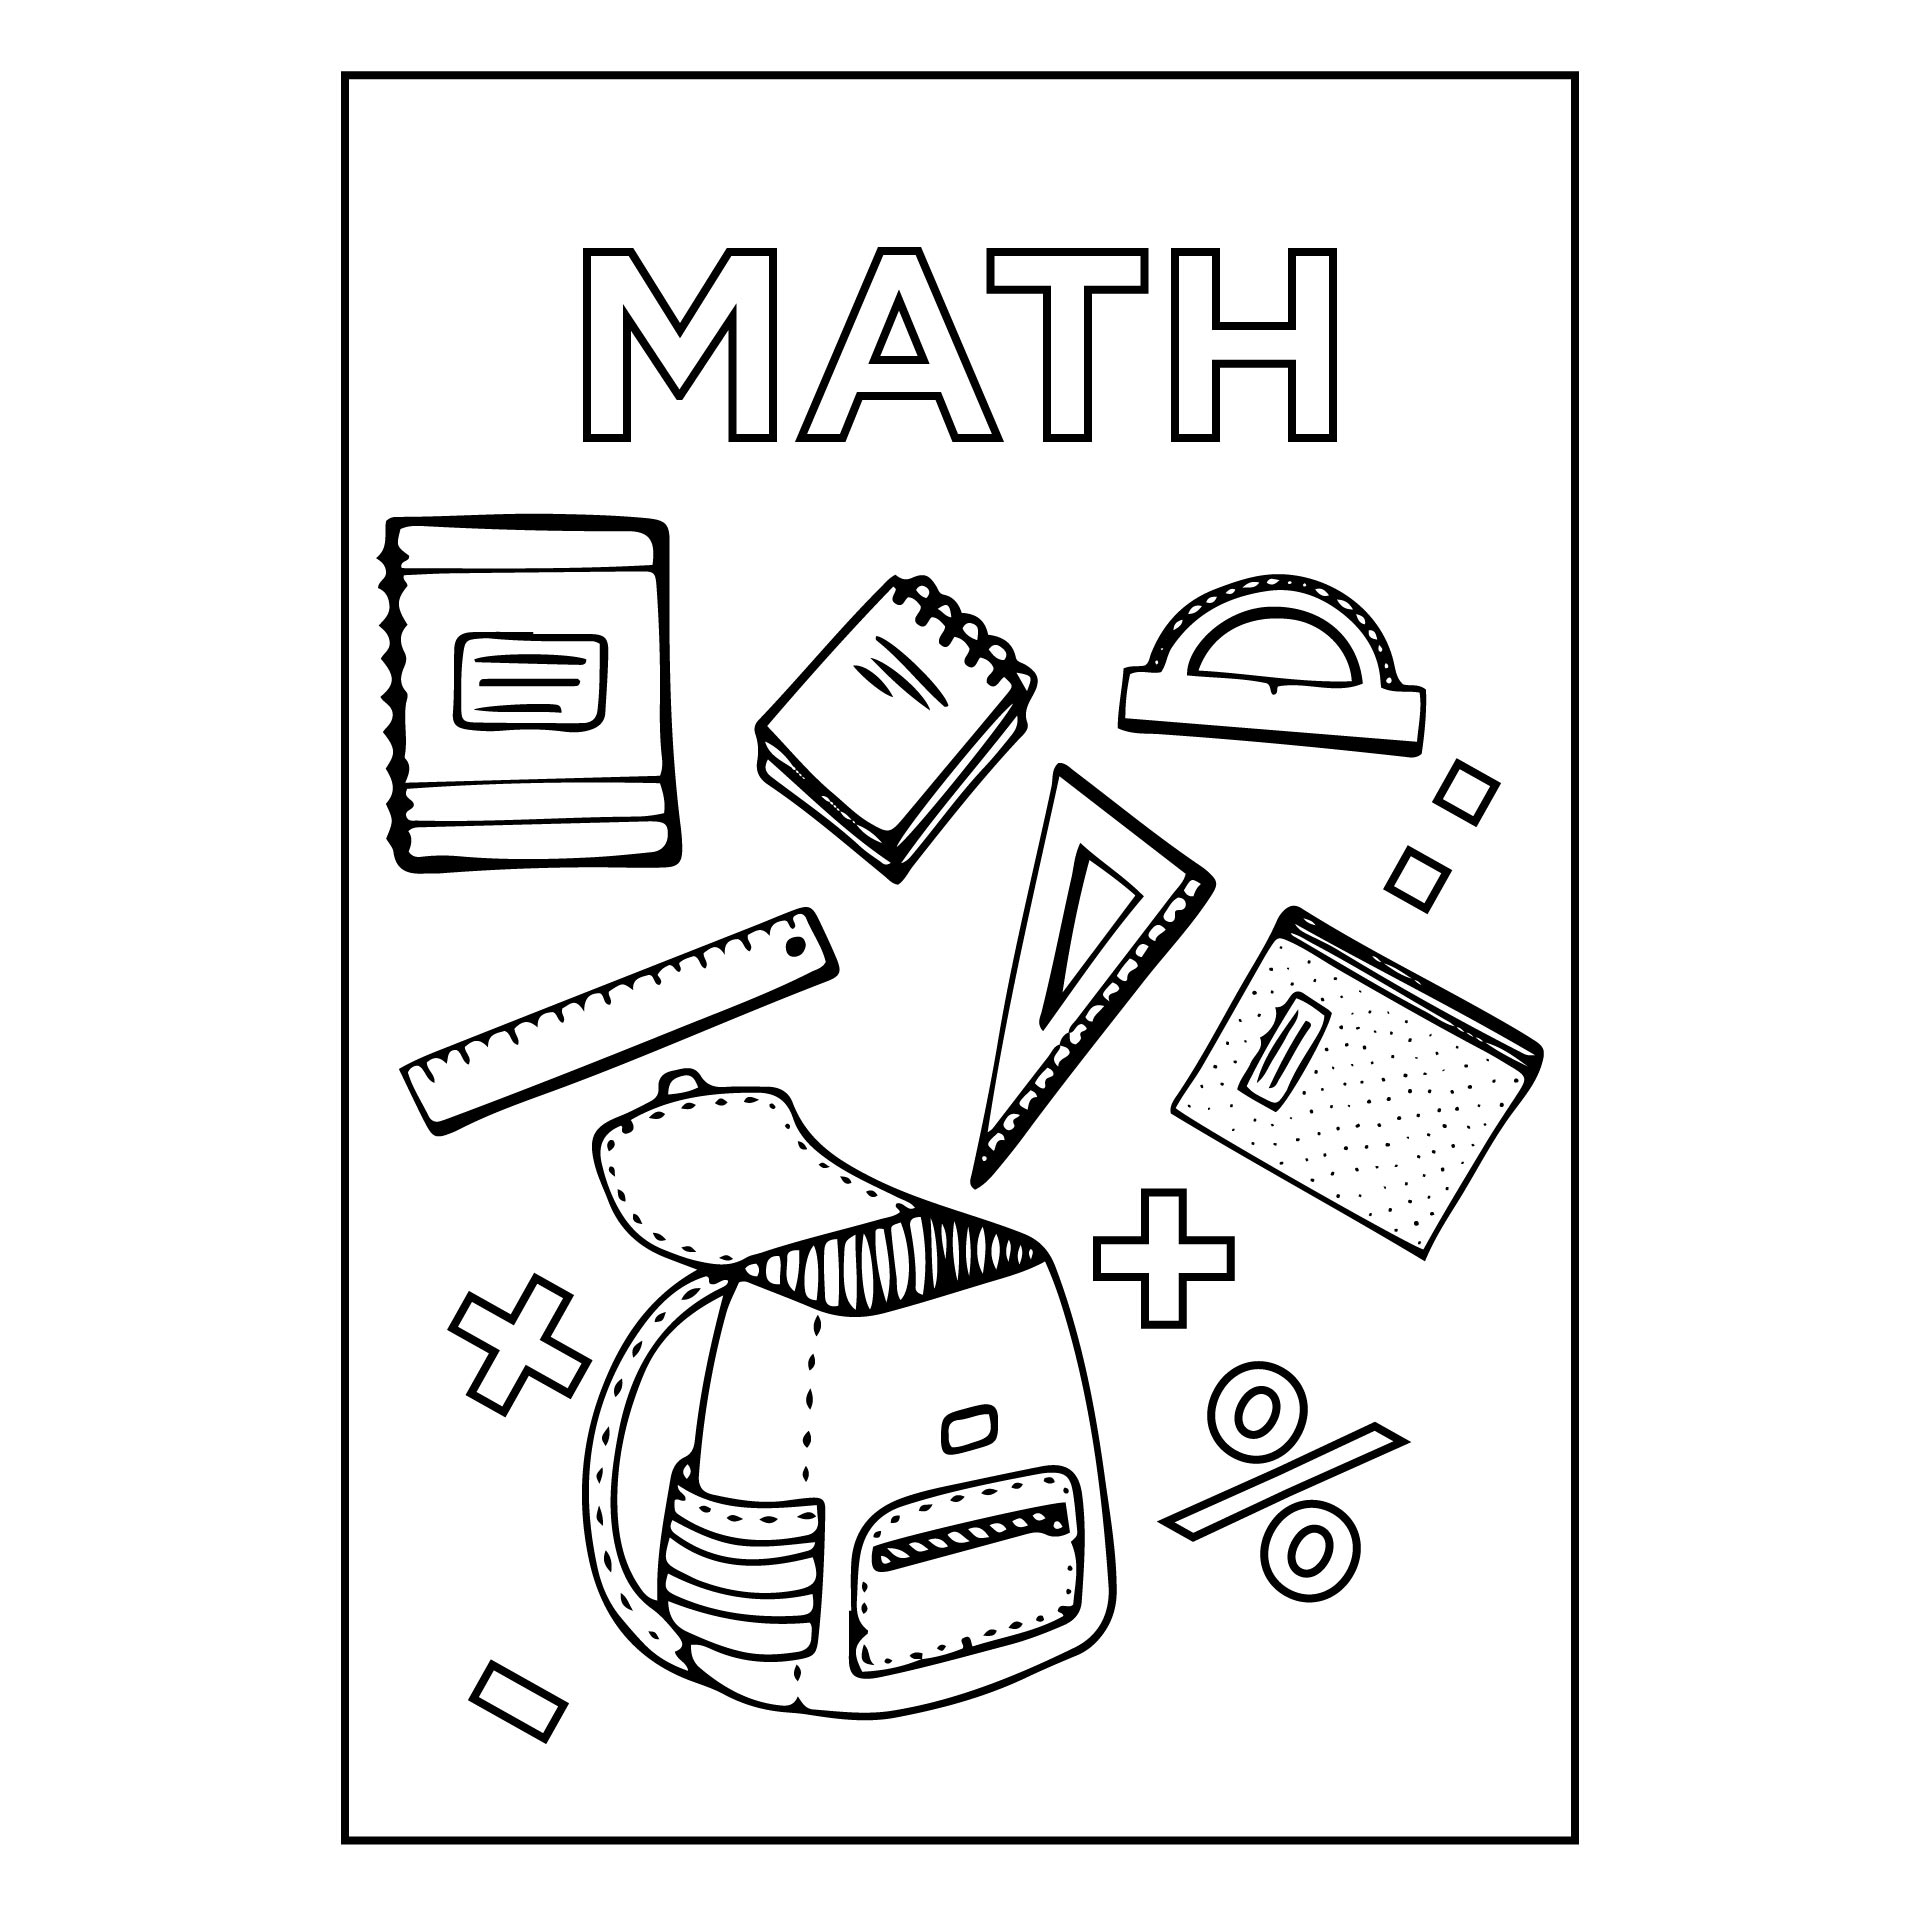 5 Best Images of Math Binder Cover